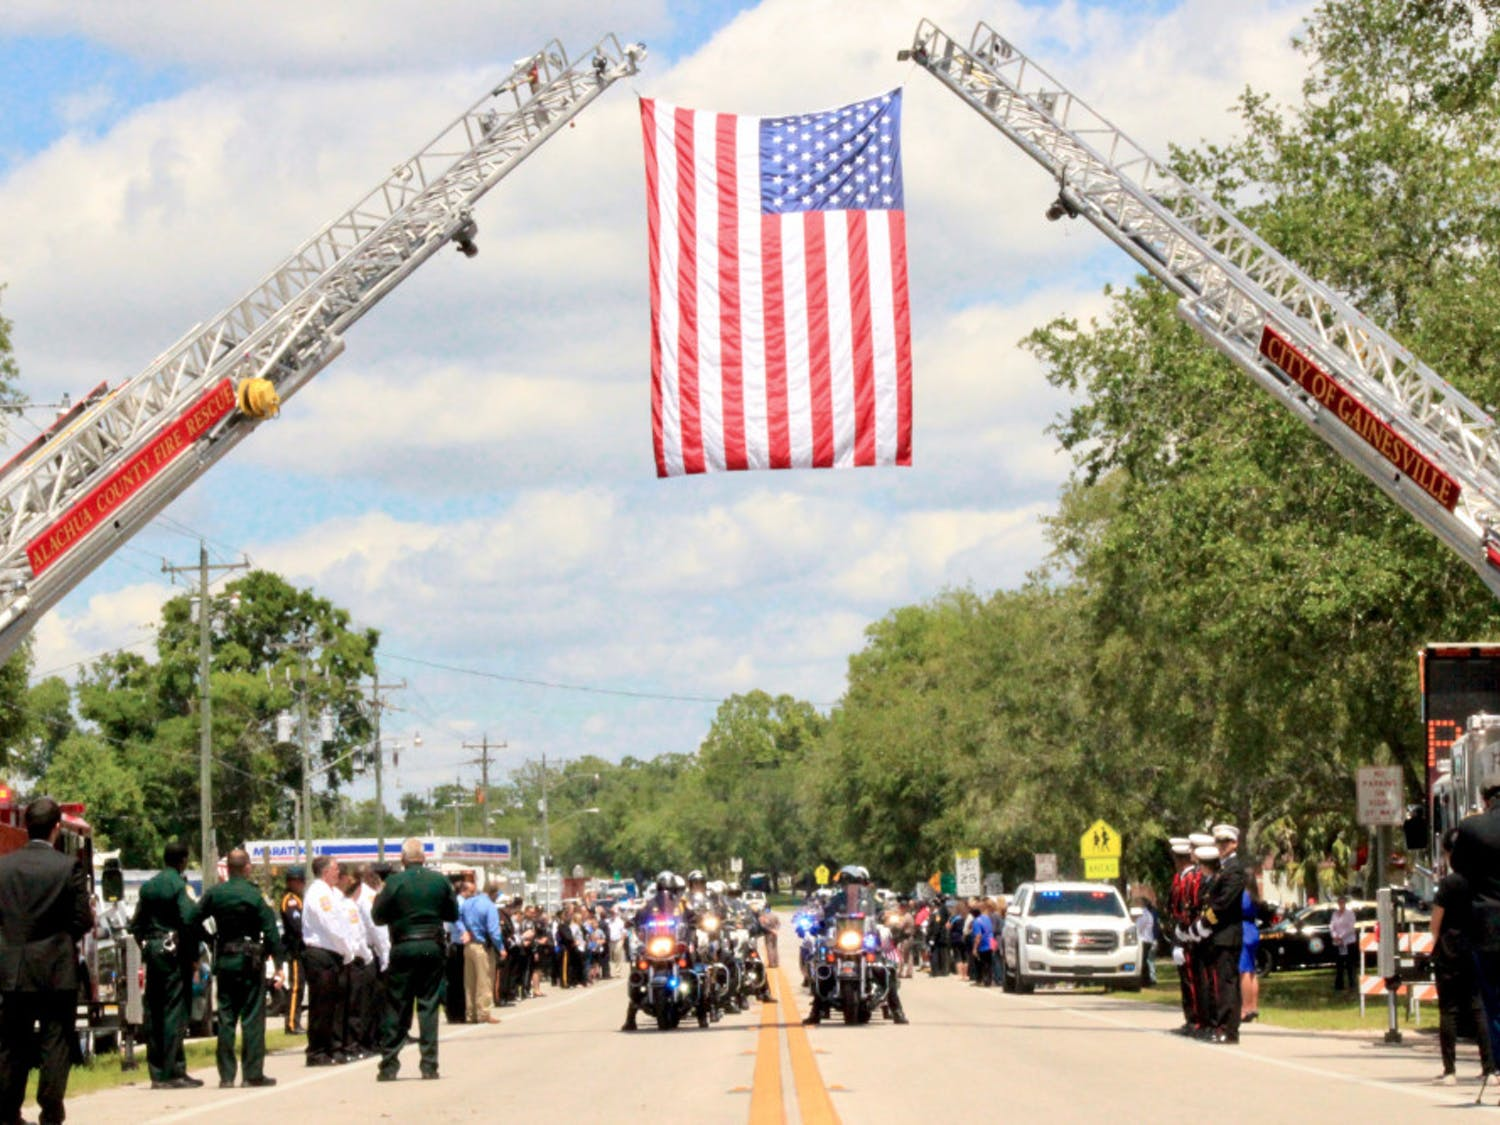 A group of law enforcement officers drive under the U.S. flag hoisted by Alachua County Fire Rescue and Gainesville Fire Rescue fire engine ladders as part of the funeral procession on South Main Street in Bell, Florida for the two deputies who were shot in Trenton.